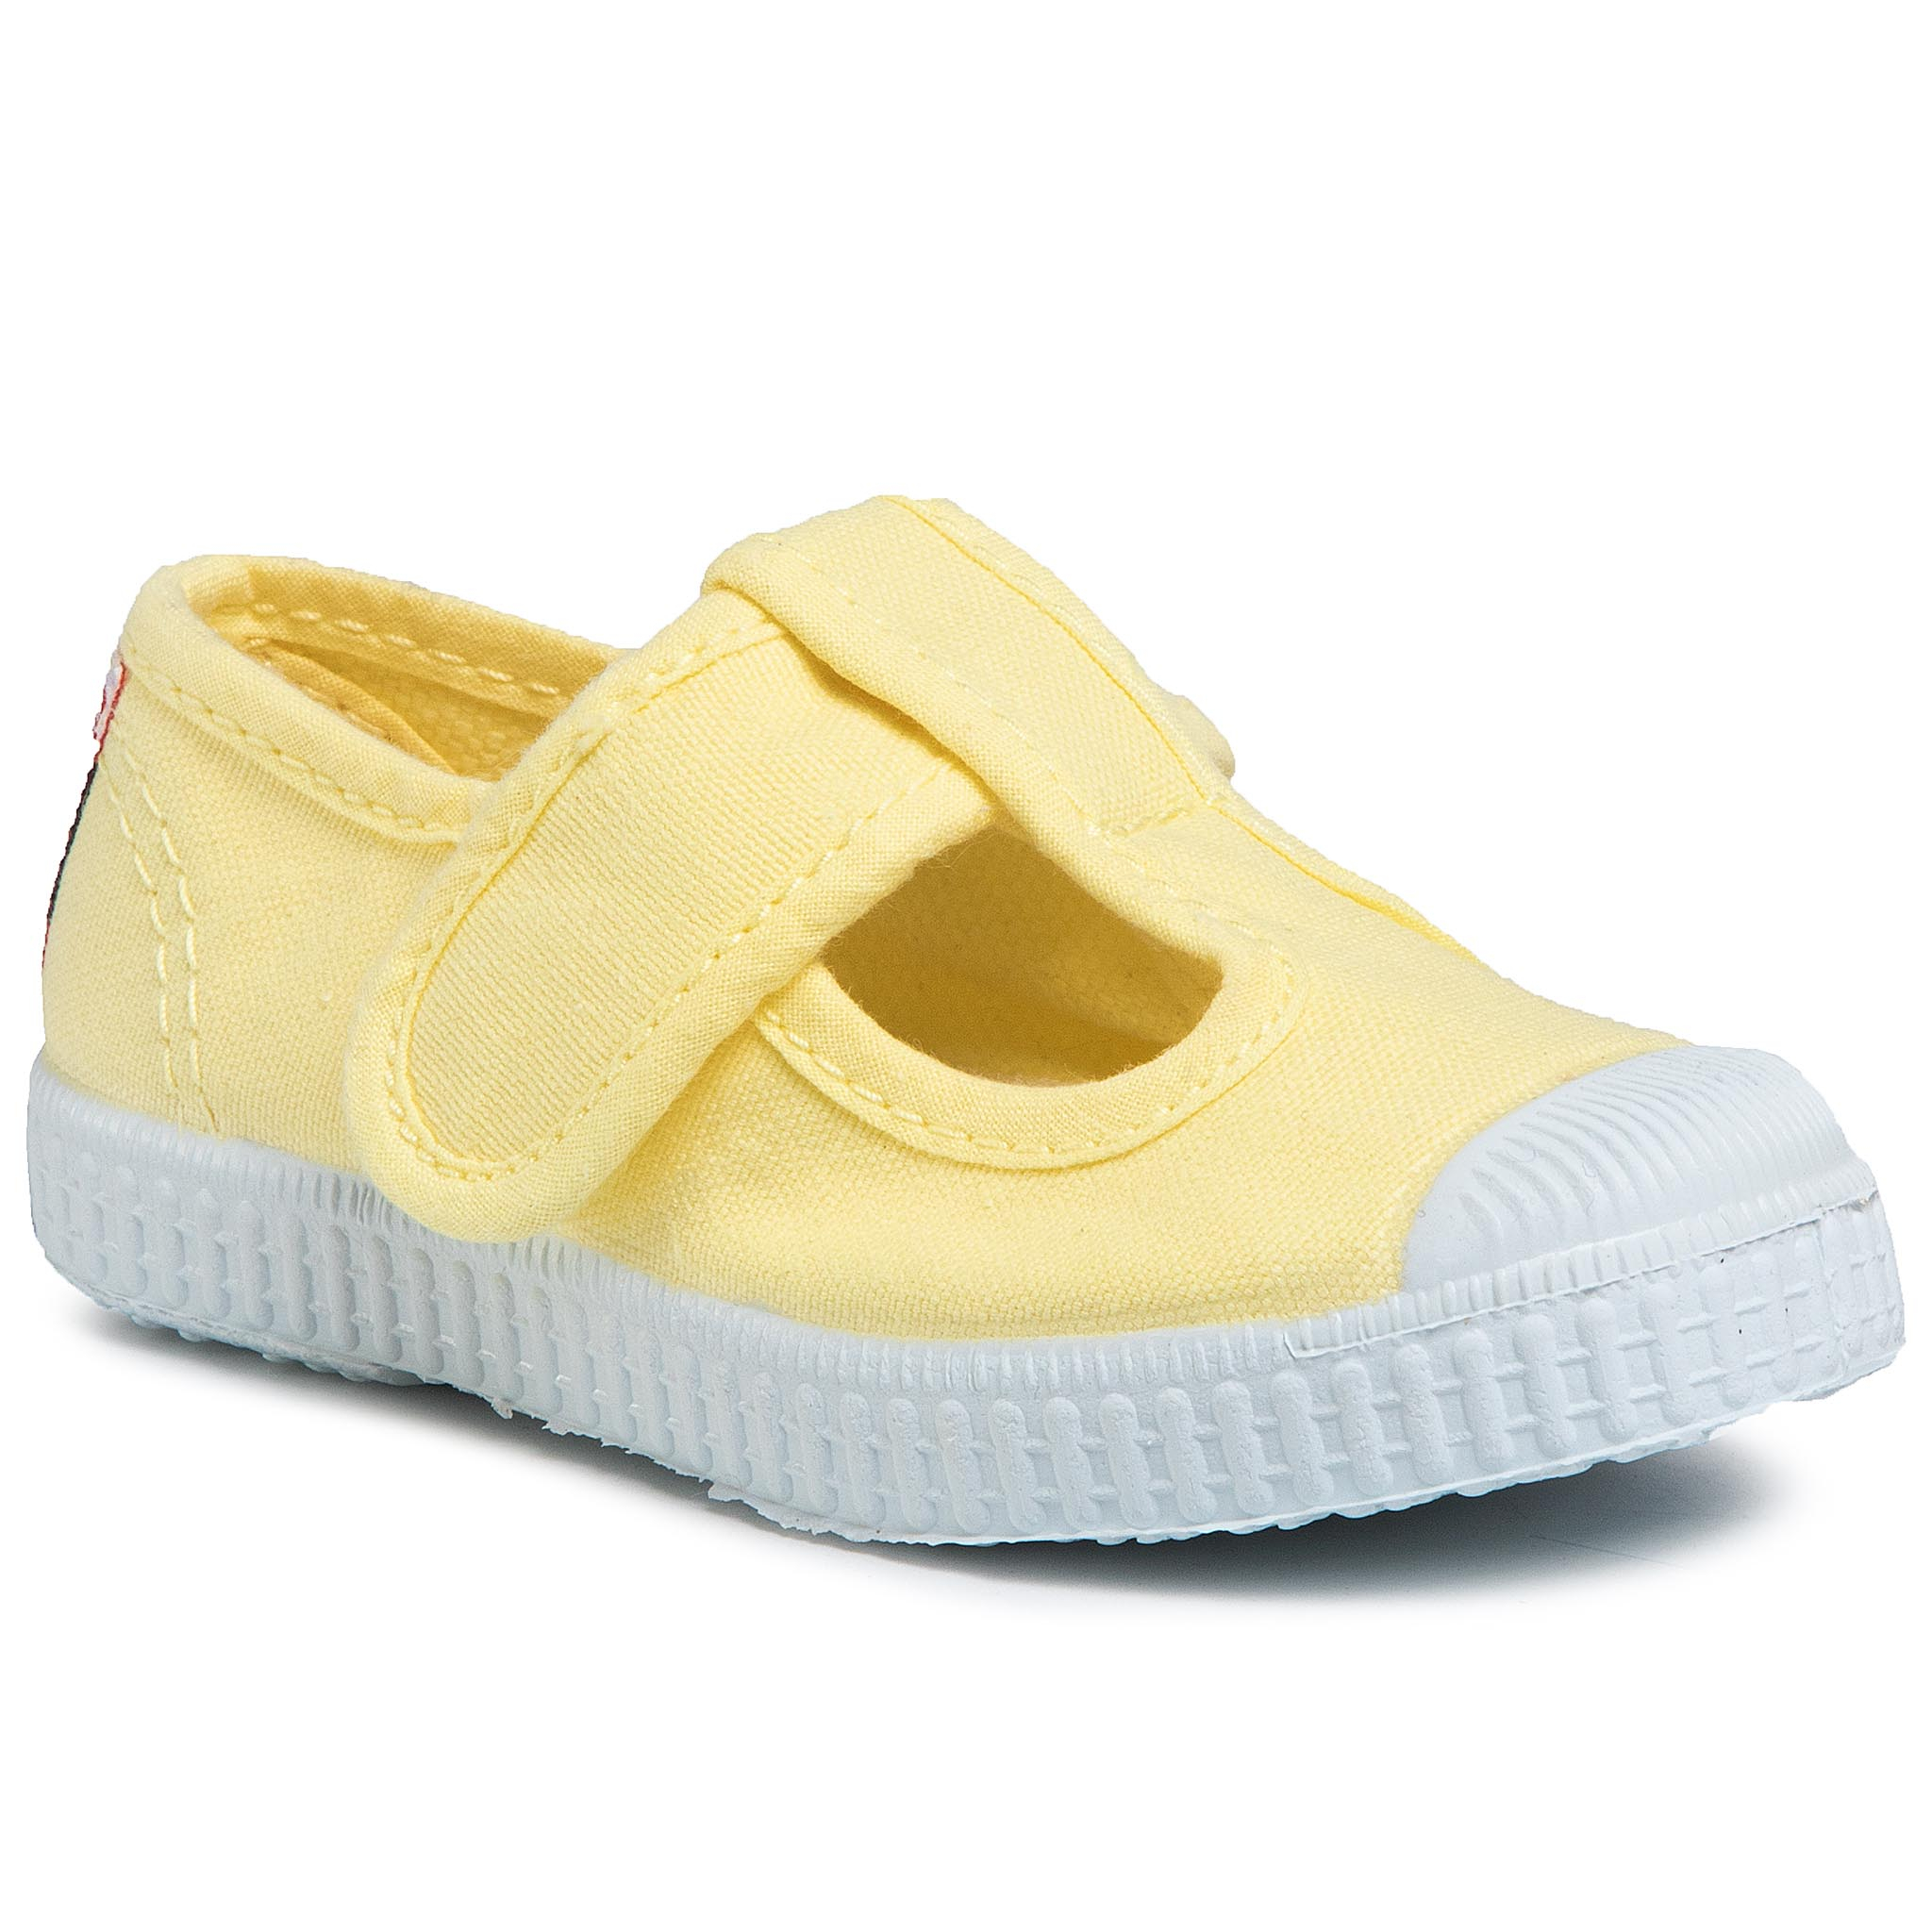 Sneakers CIENTA - 77997 New Yellow 167